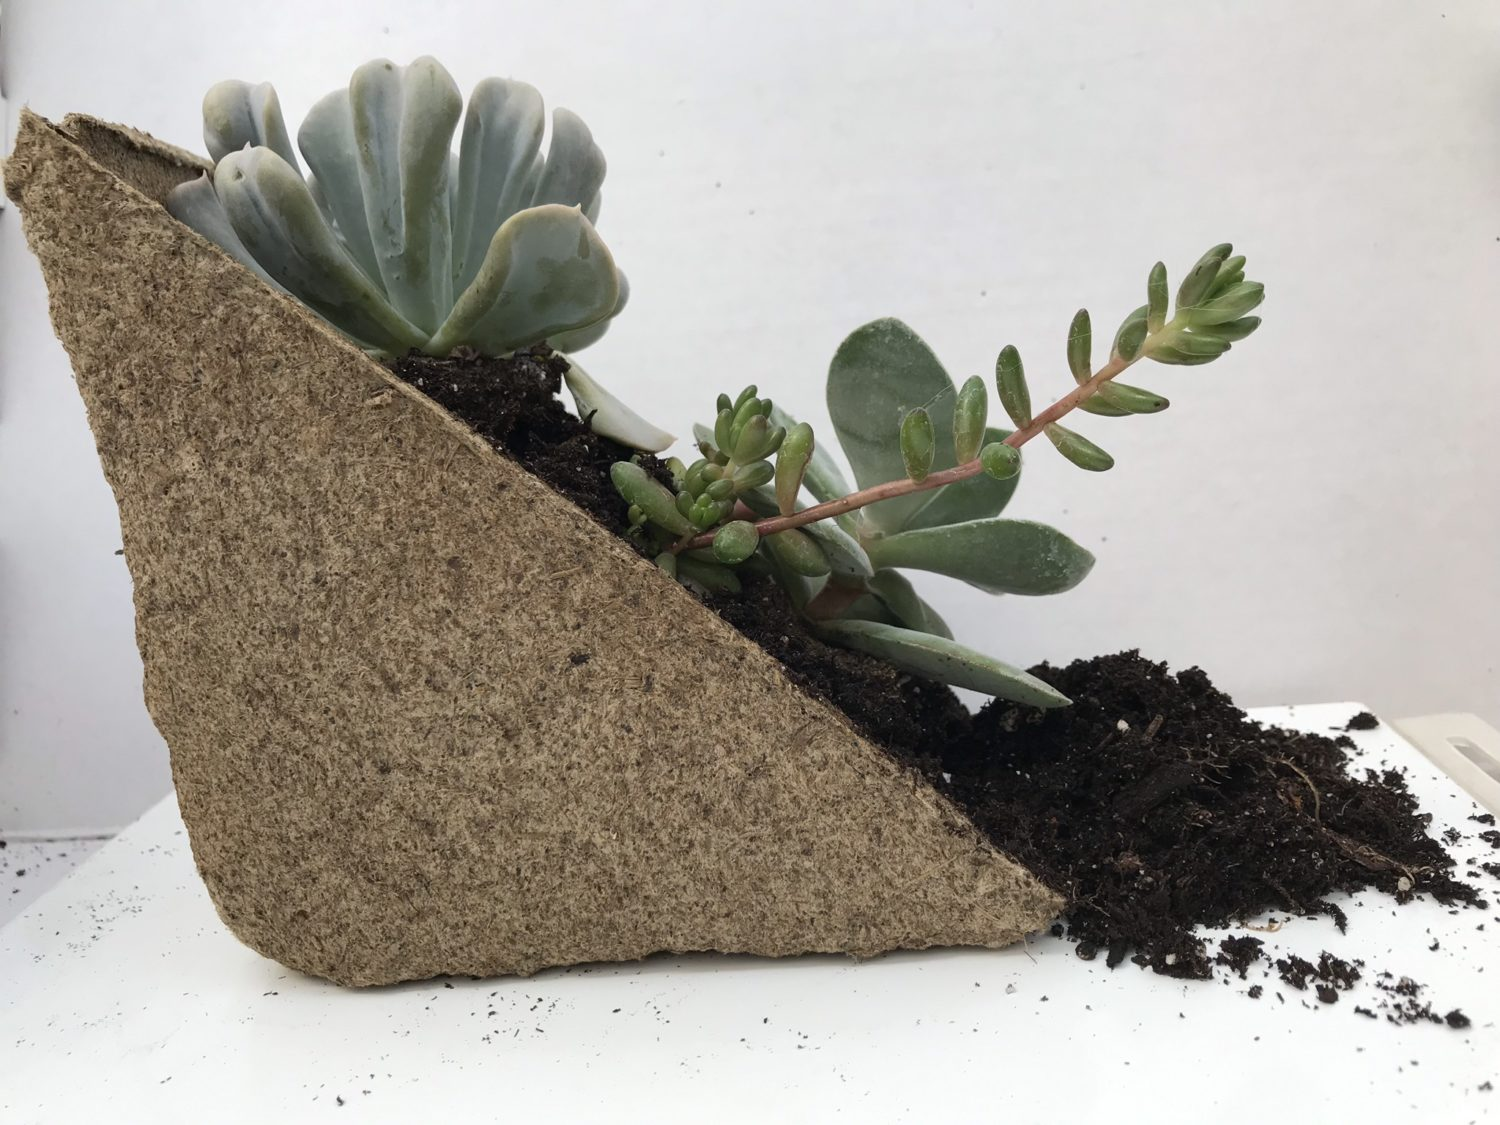 Triangular pulp material filled with soil and succulents